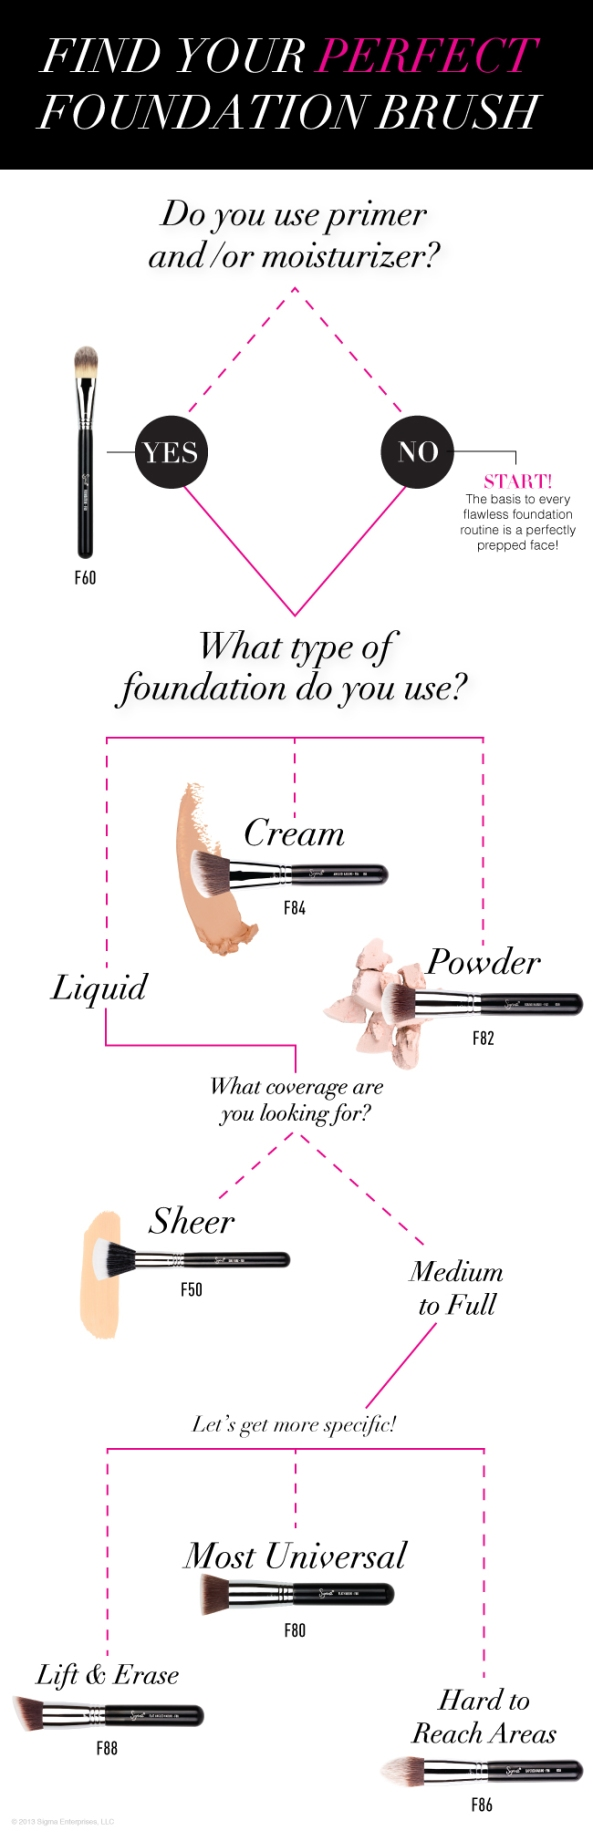 Sigma- Find YOUR Perfect Foundation Brush!